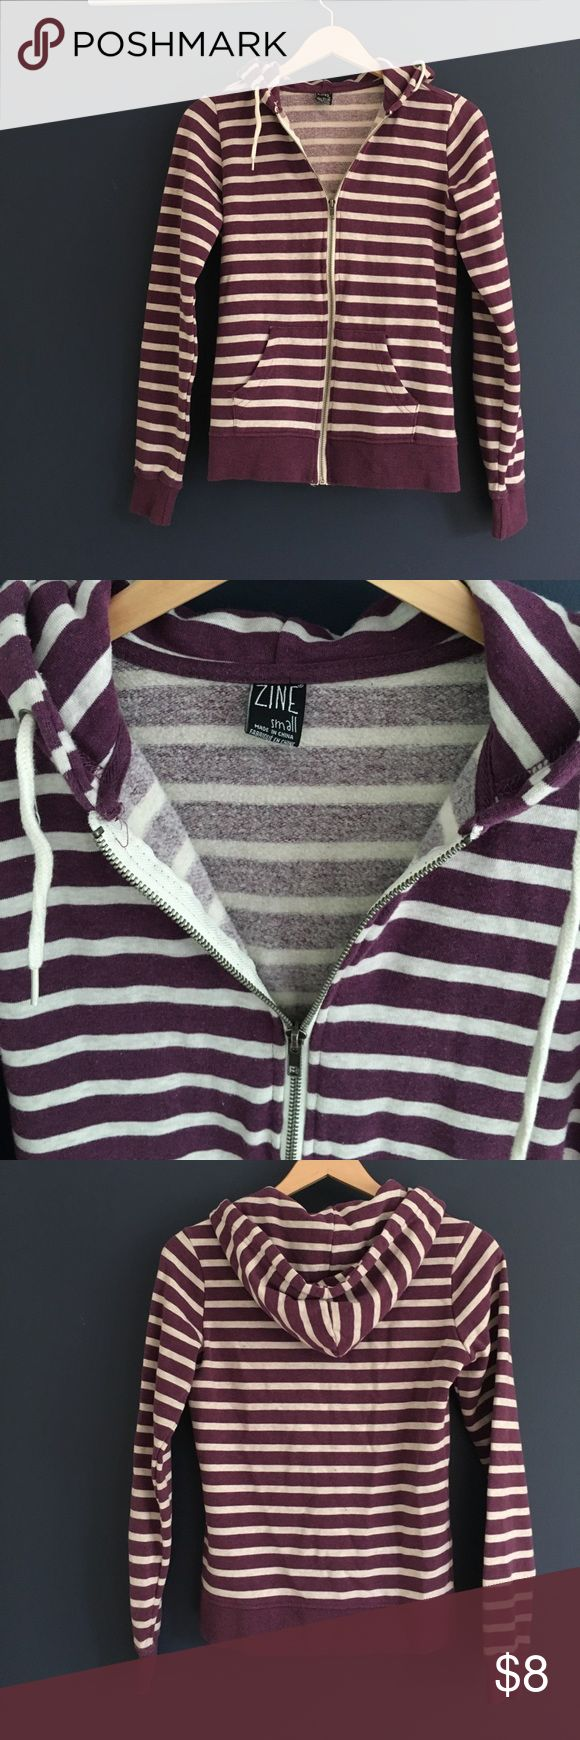 Striped Zumies hoodie Purple and beige/gray zip up hoodie with very soft and comfy interior Tops Sweatshirts & Hoodies